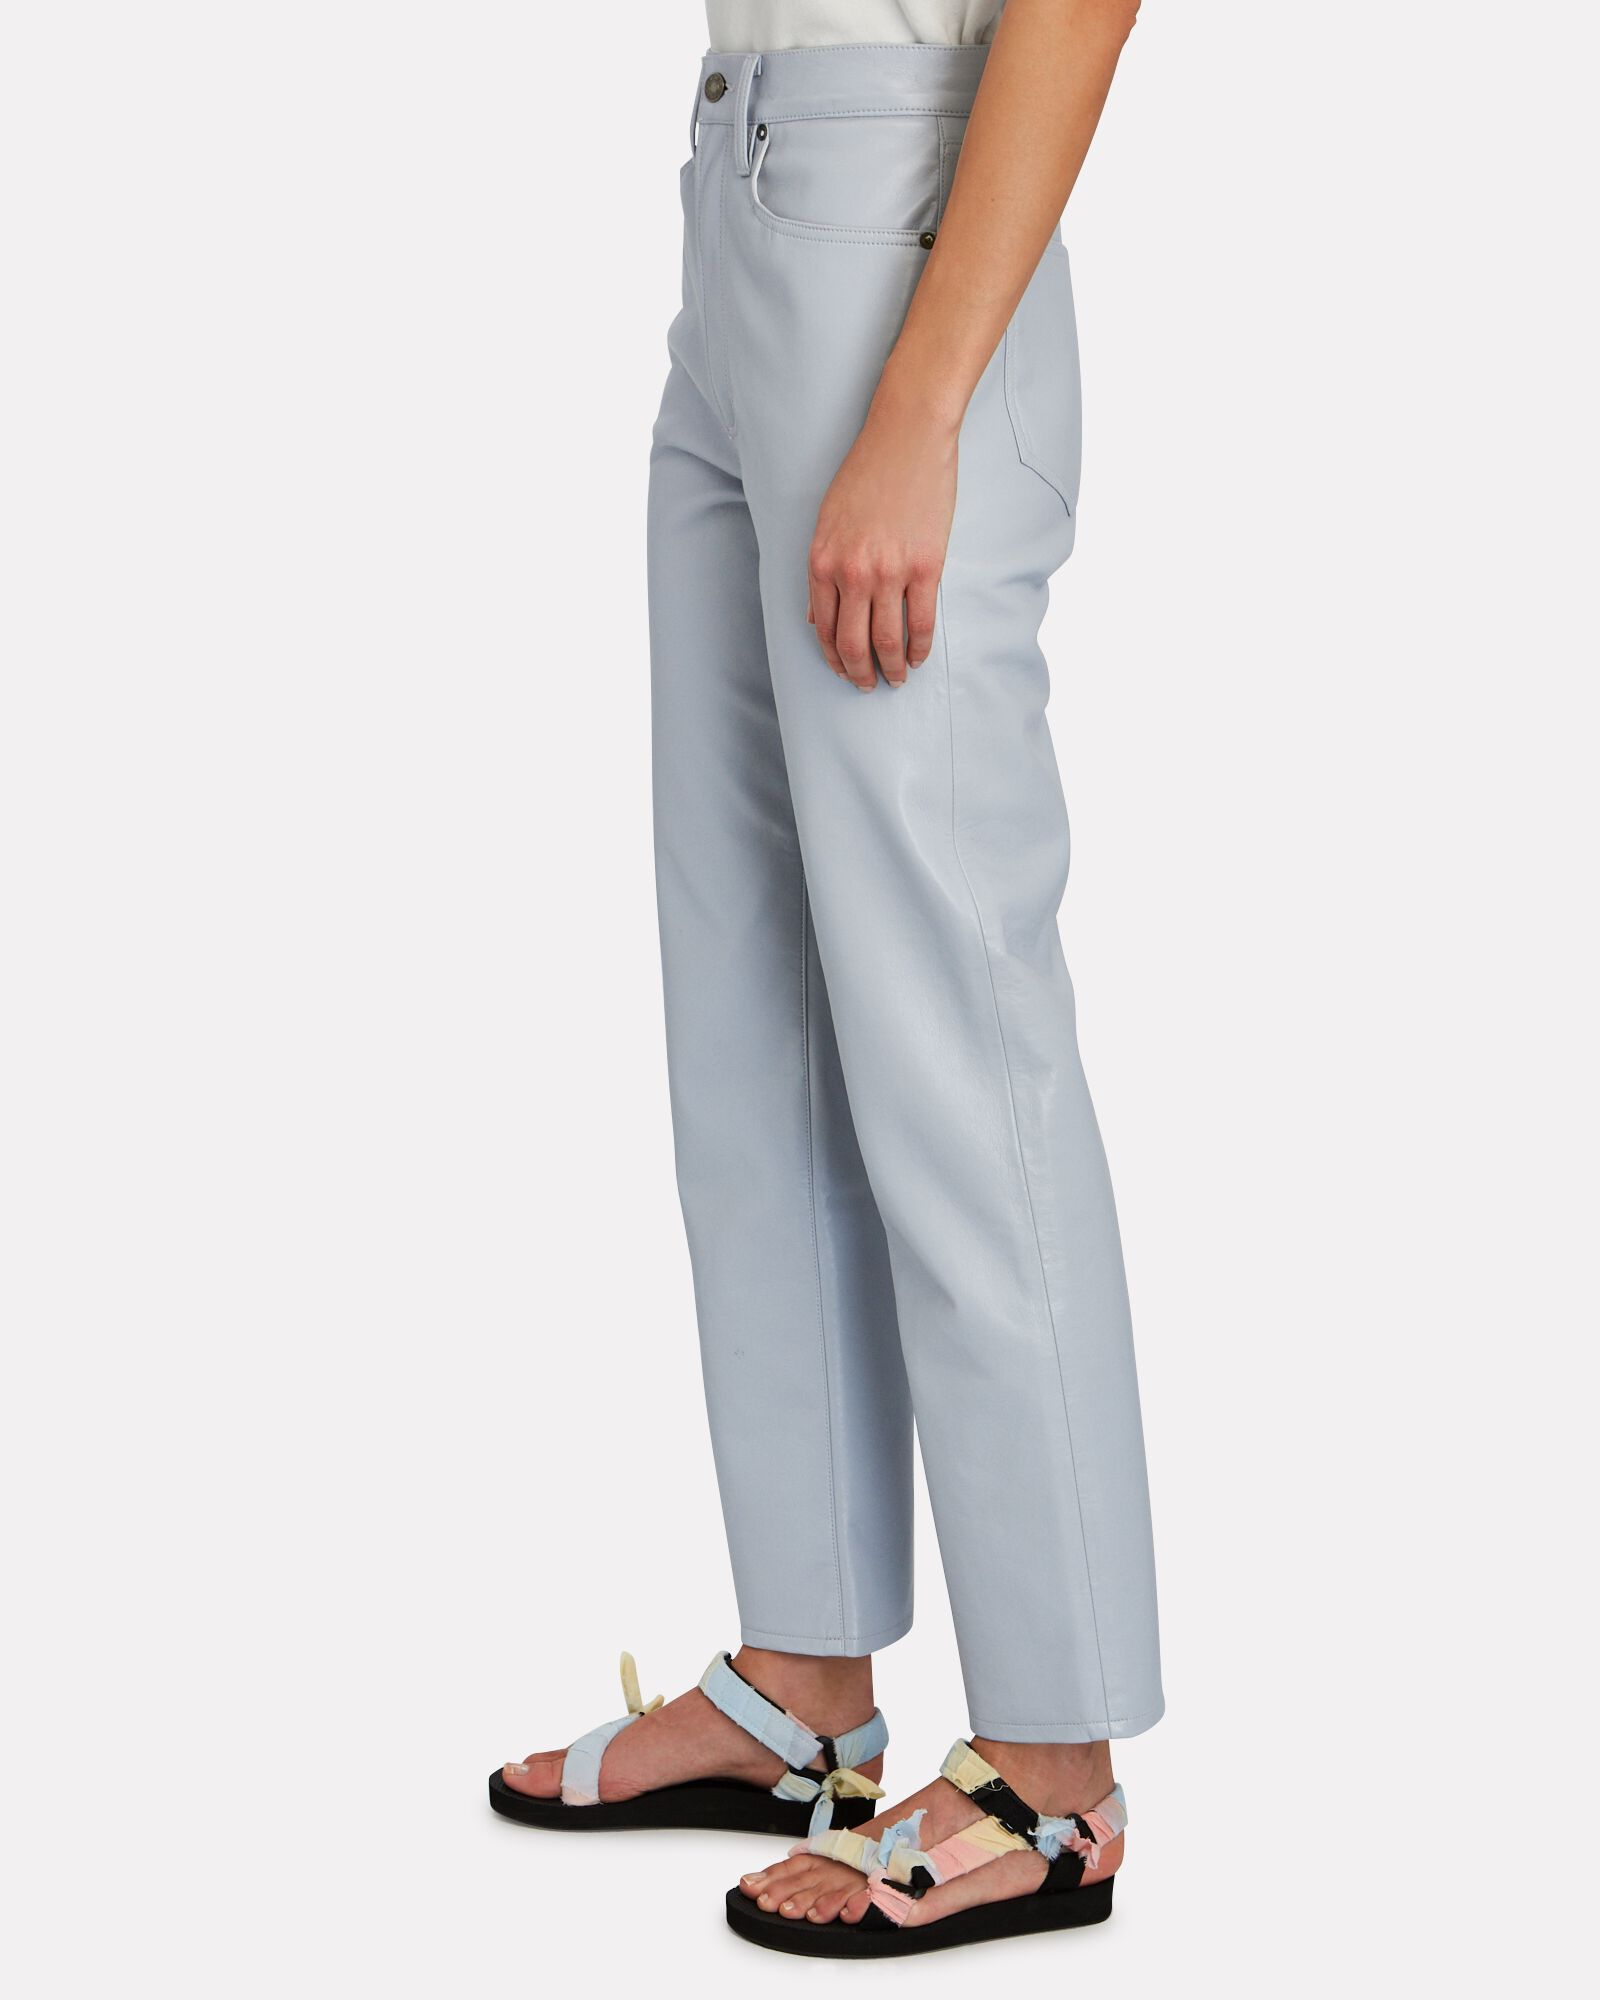 Fitted 90s Recycled Leather Pants, LIGHT BLUE, hi-res